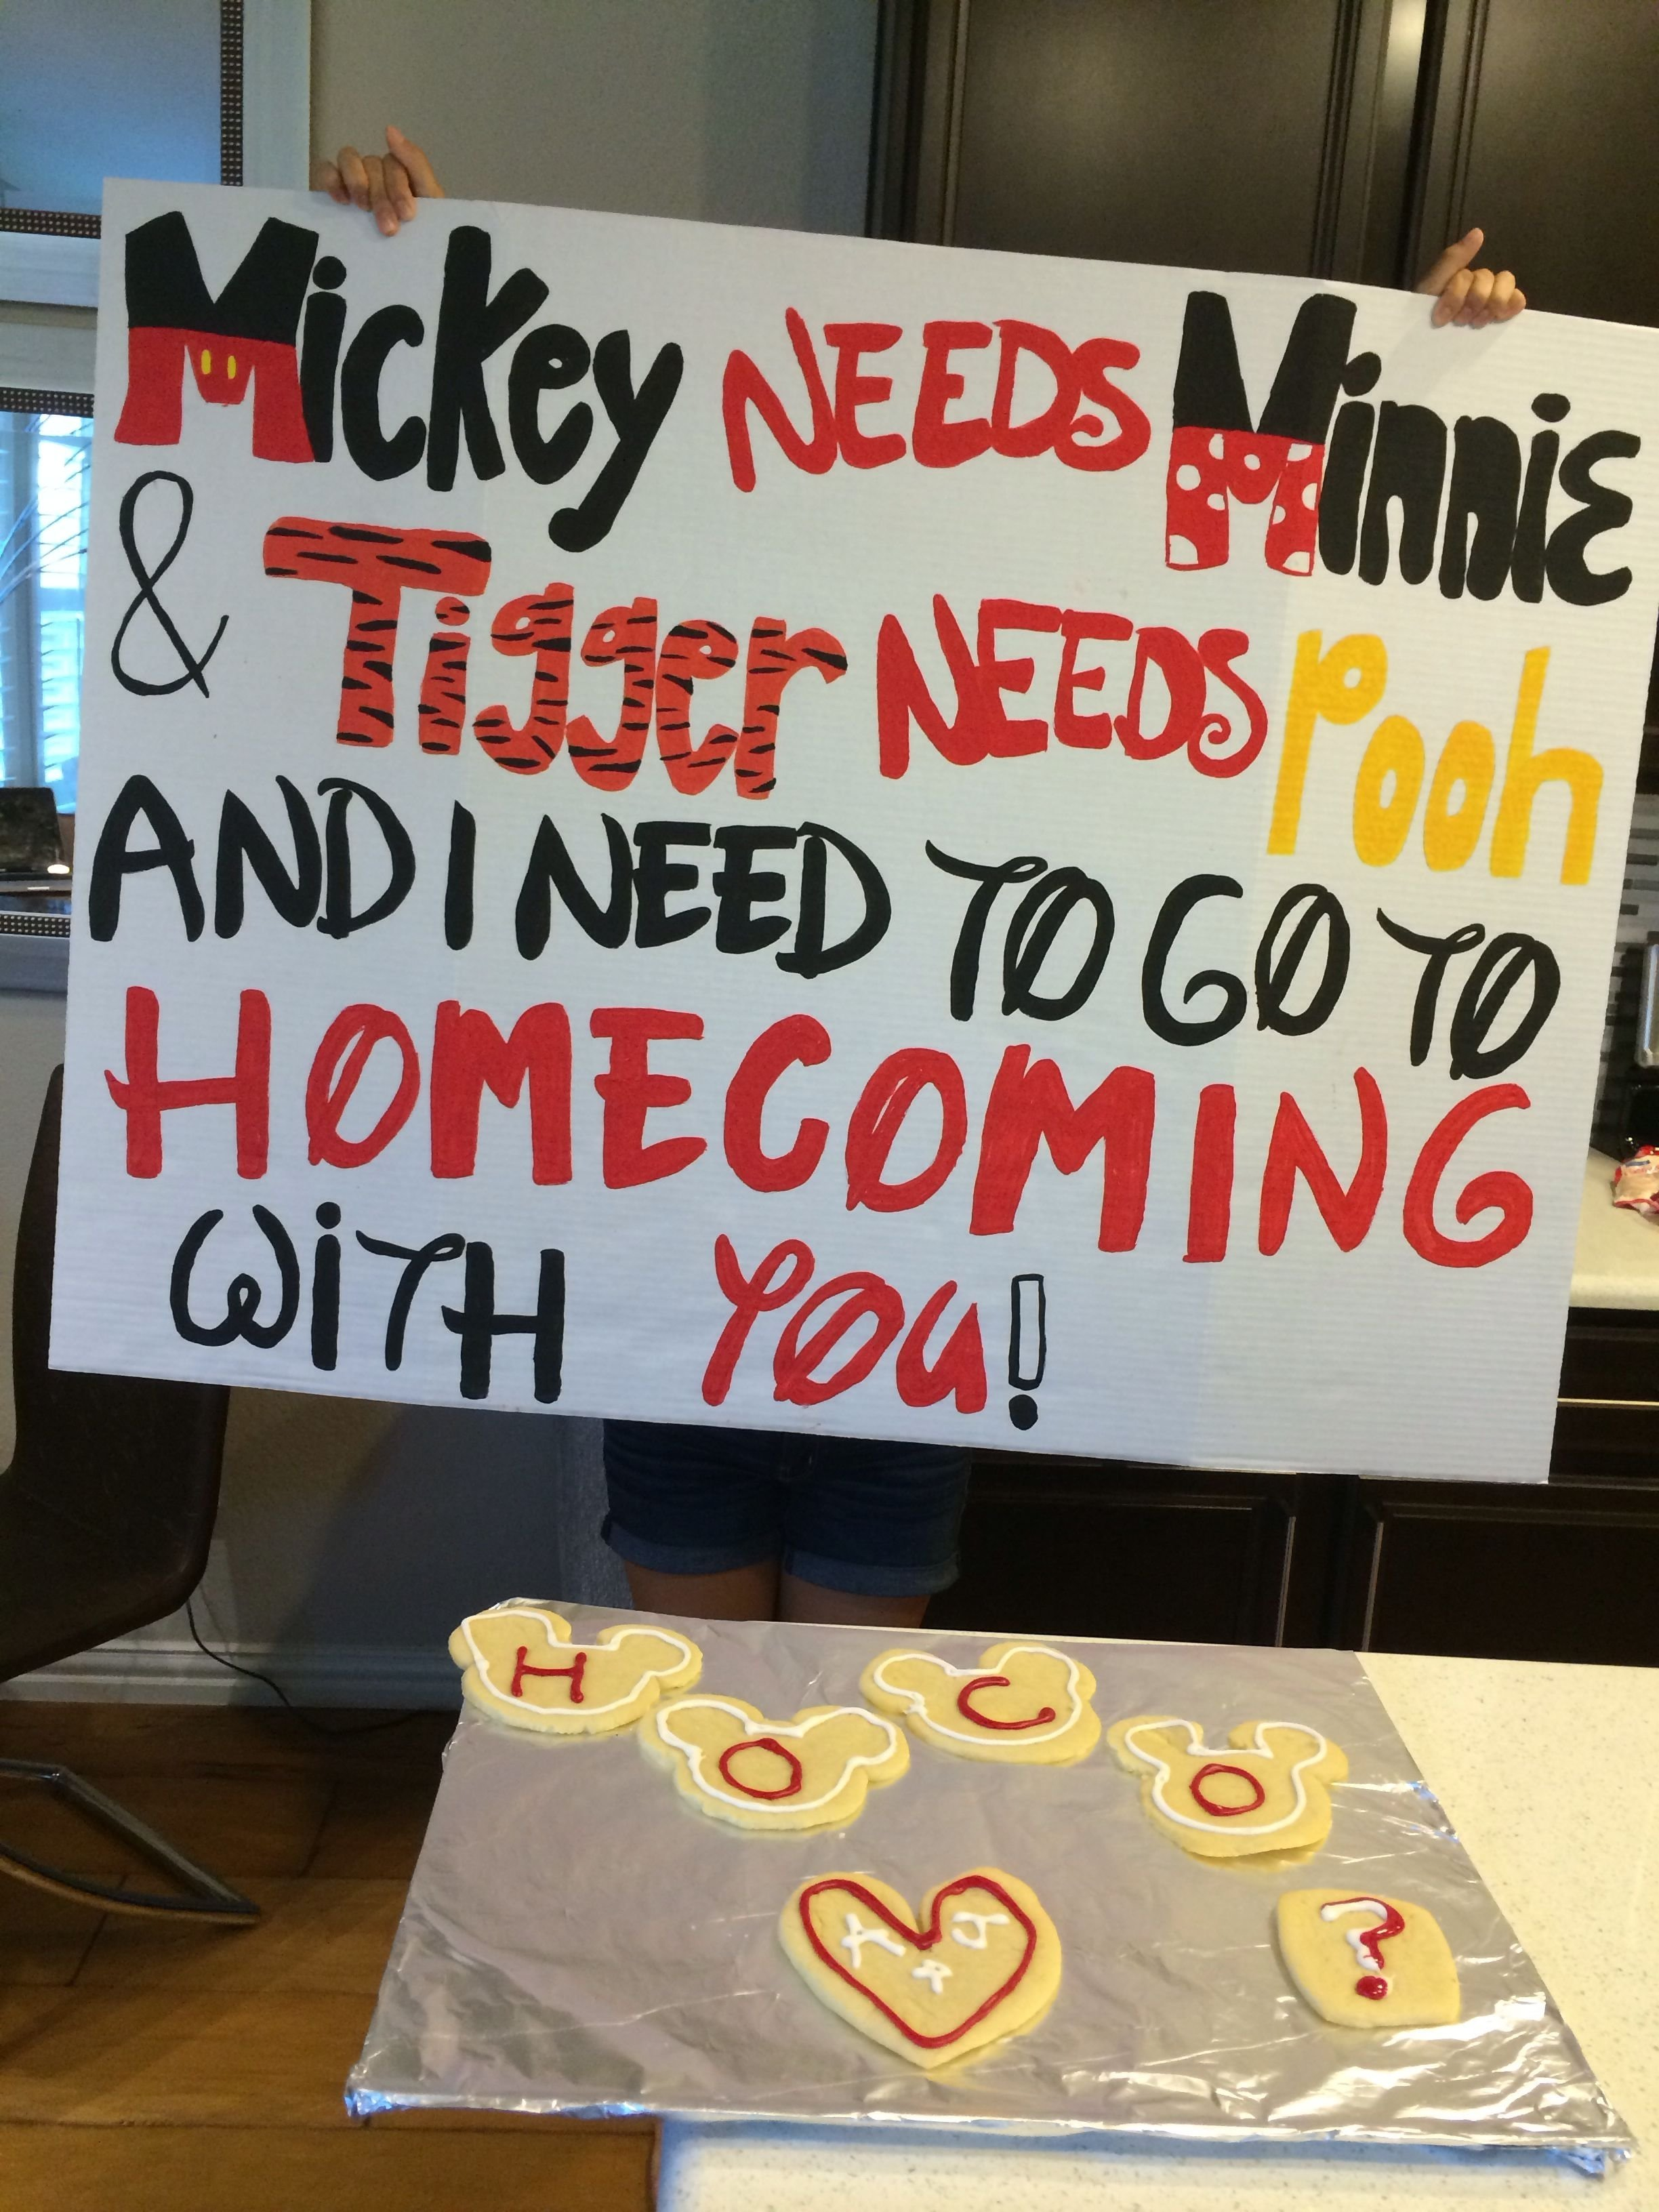 10 Pretty Cute Homecoming Ideas Asking Girl 20 ways to do your promposal or homecoming invites homecoming 1 2020